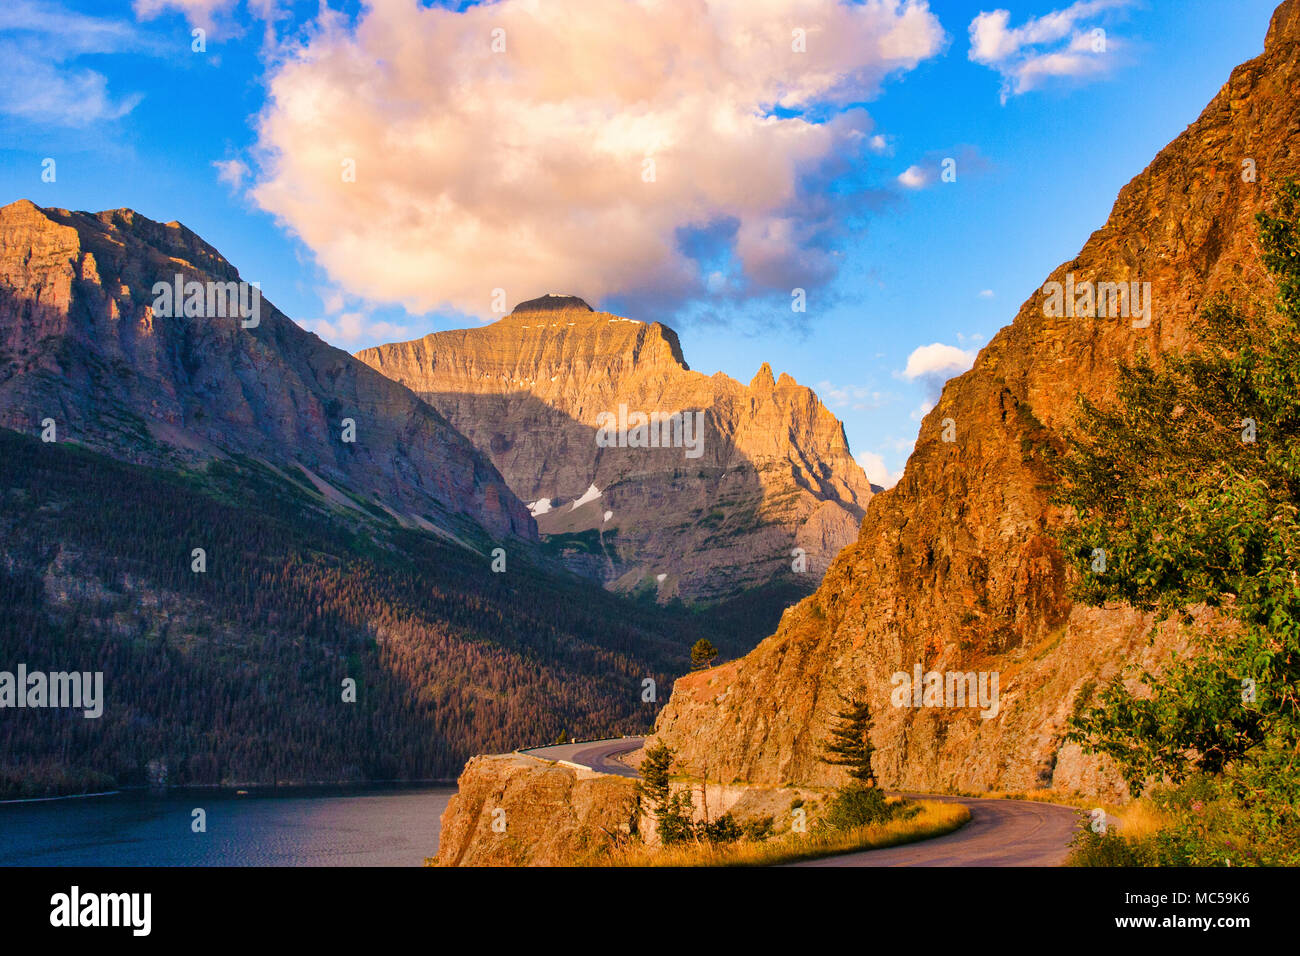 Sunrise lighting the mountains along Going to the Sun Road in Glacier National Park in Montana. - Stock Image